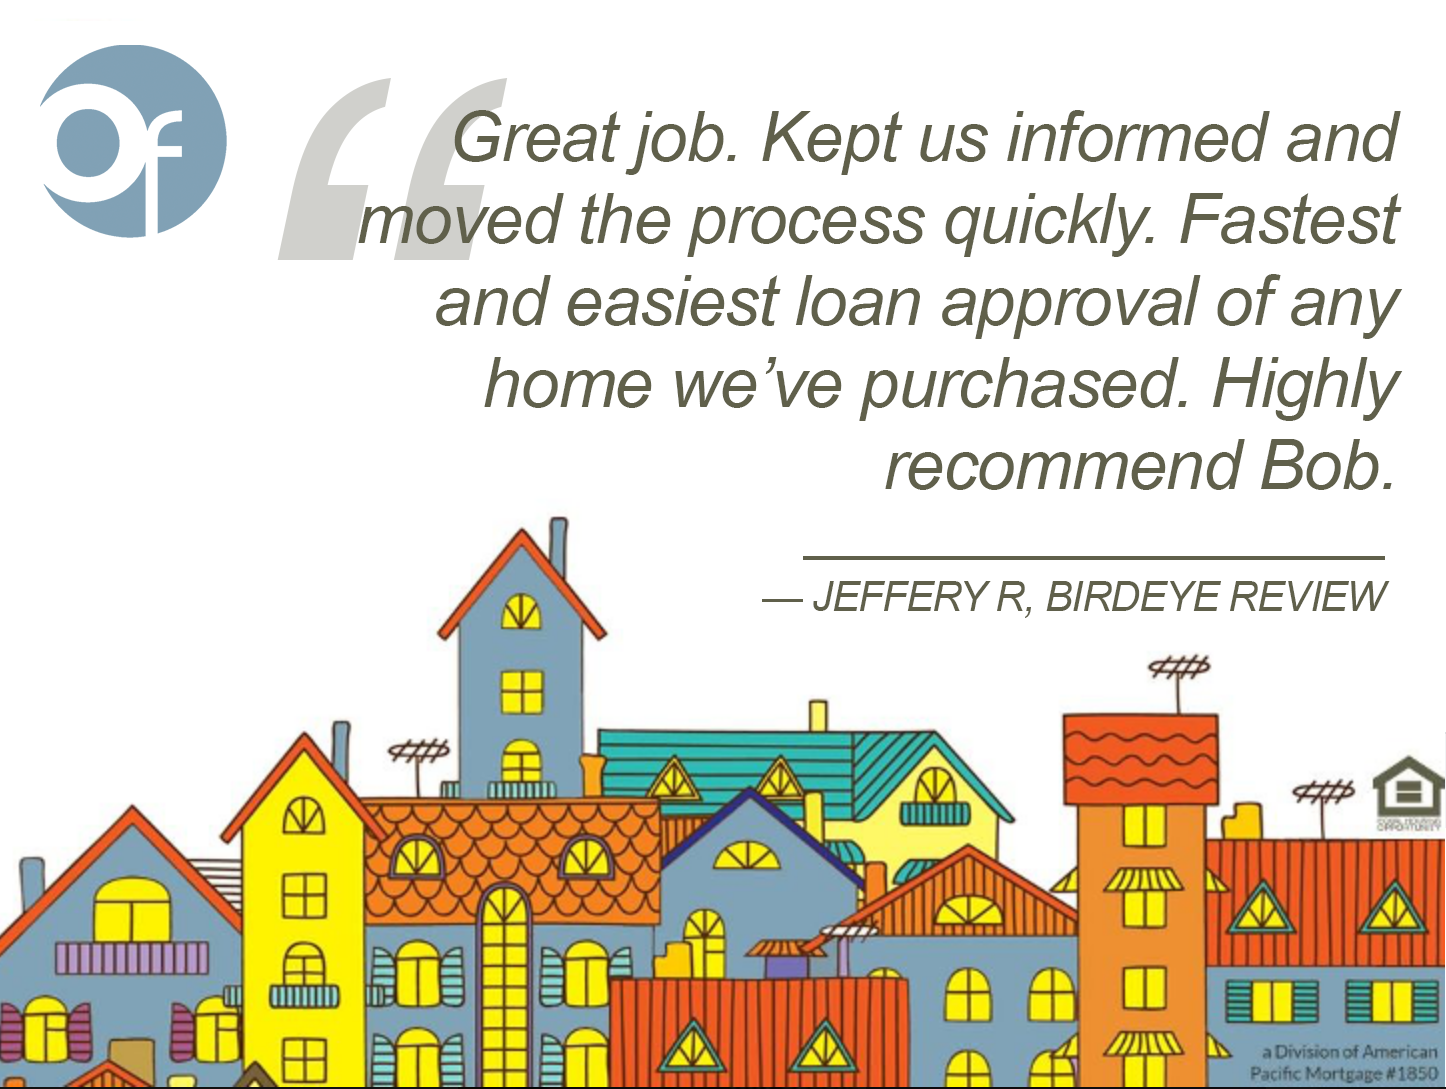 Great job. Kept us informed and moved the process quickly. Fastest and easiest loan approval of any home we've purchased. Highly recommend Bob.